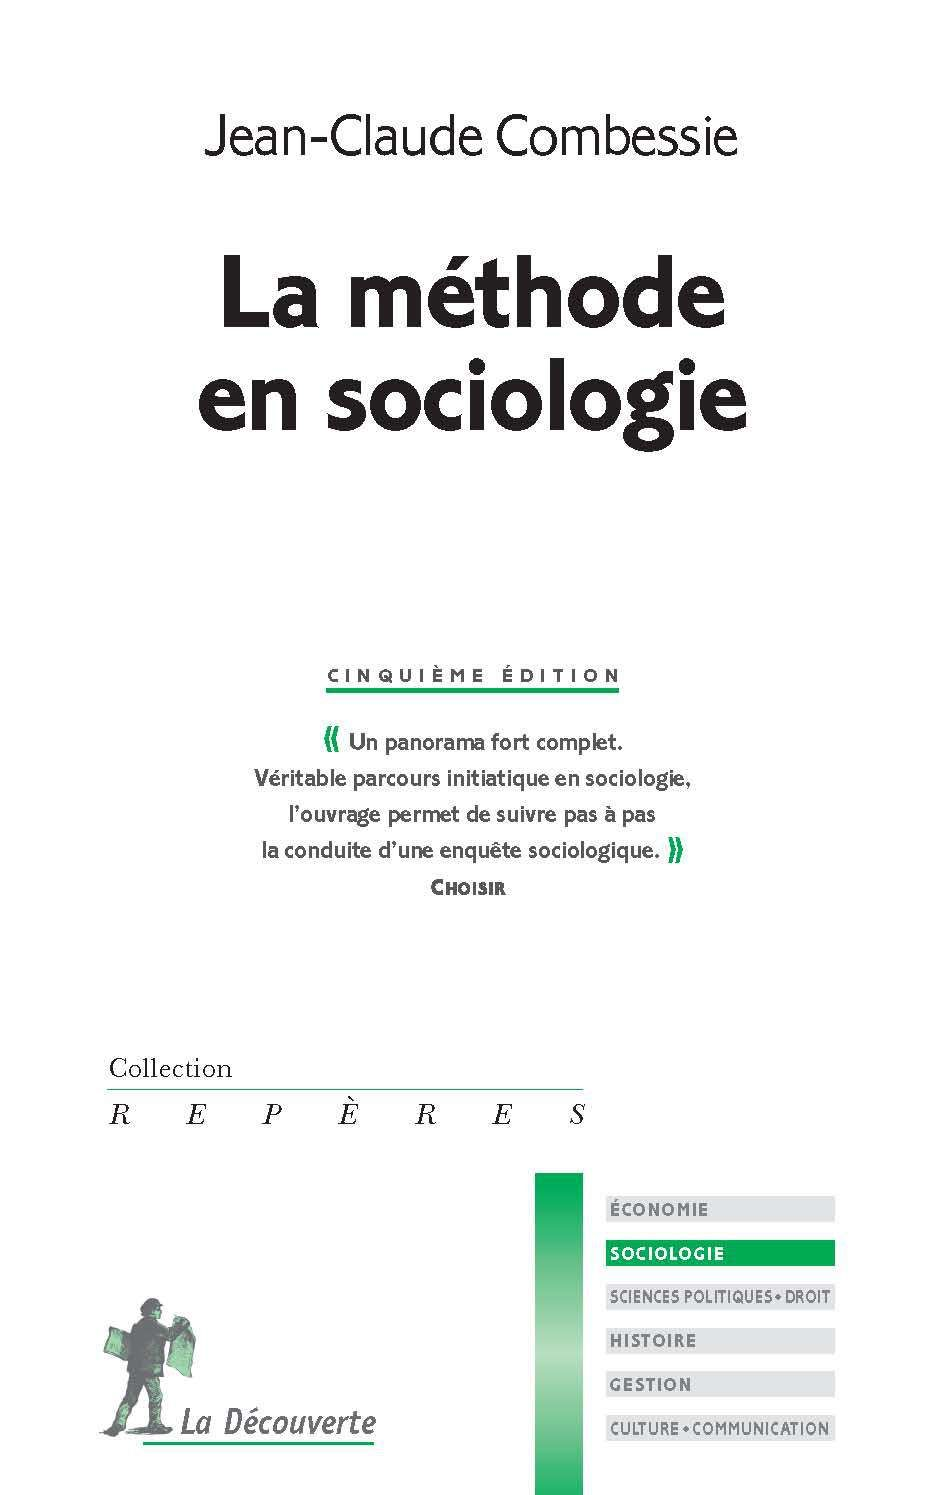 Quelles Sont Les Principales Methodes Employees En Sociologie Quelle Peut Etre Leur Contribution Respective Au Deroulement D U Books To Read Good Books Ebook